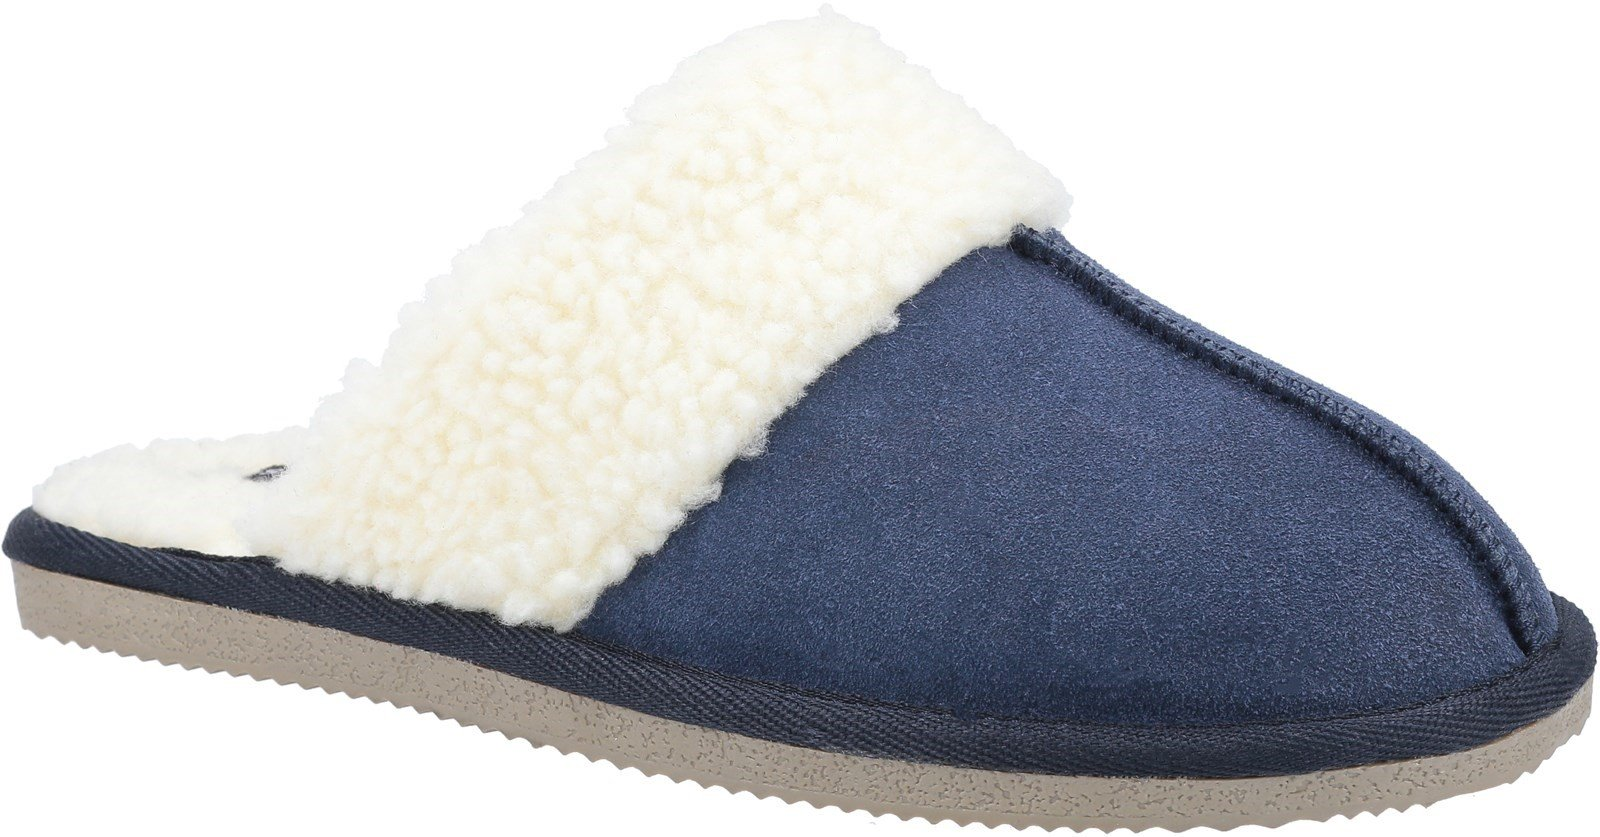 Hush Puppies Women's Arianna Mule Slippers Various Colours 31183 - Navy 3